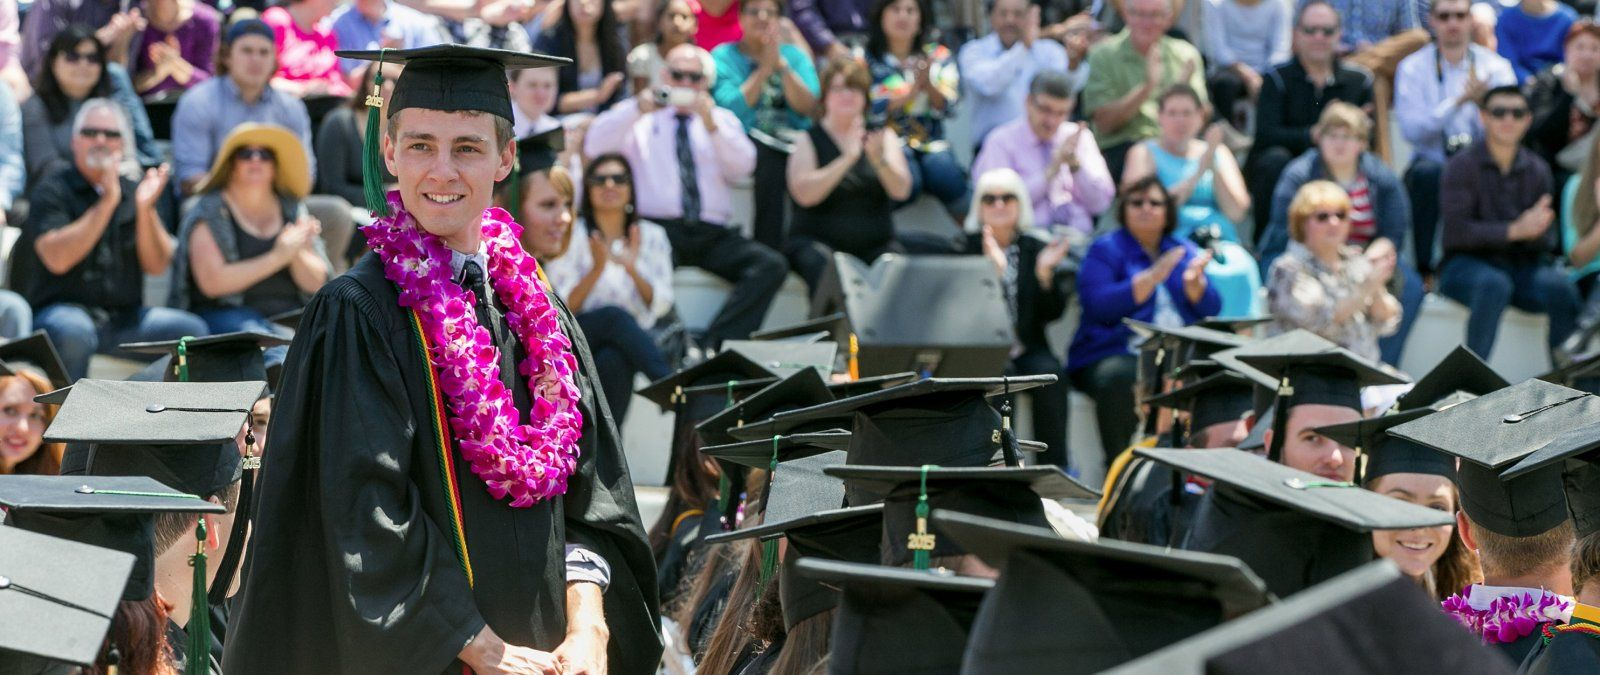 Jordan Thompson stands up to receive his diploma at PLNU's commencement ceremony